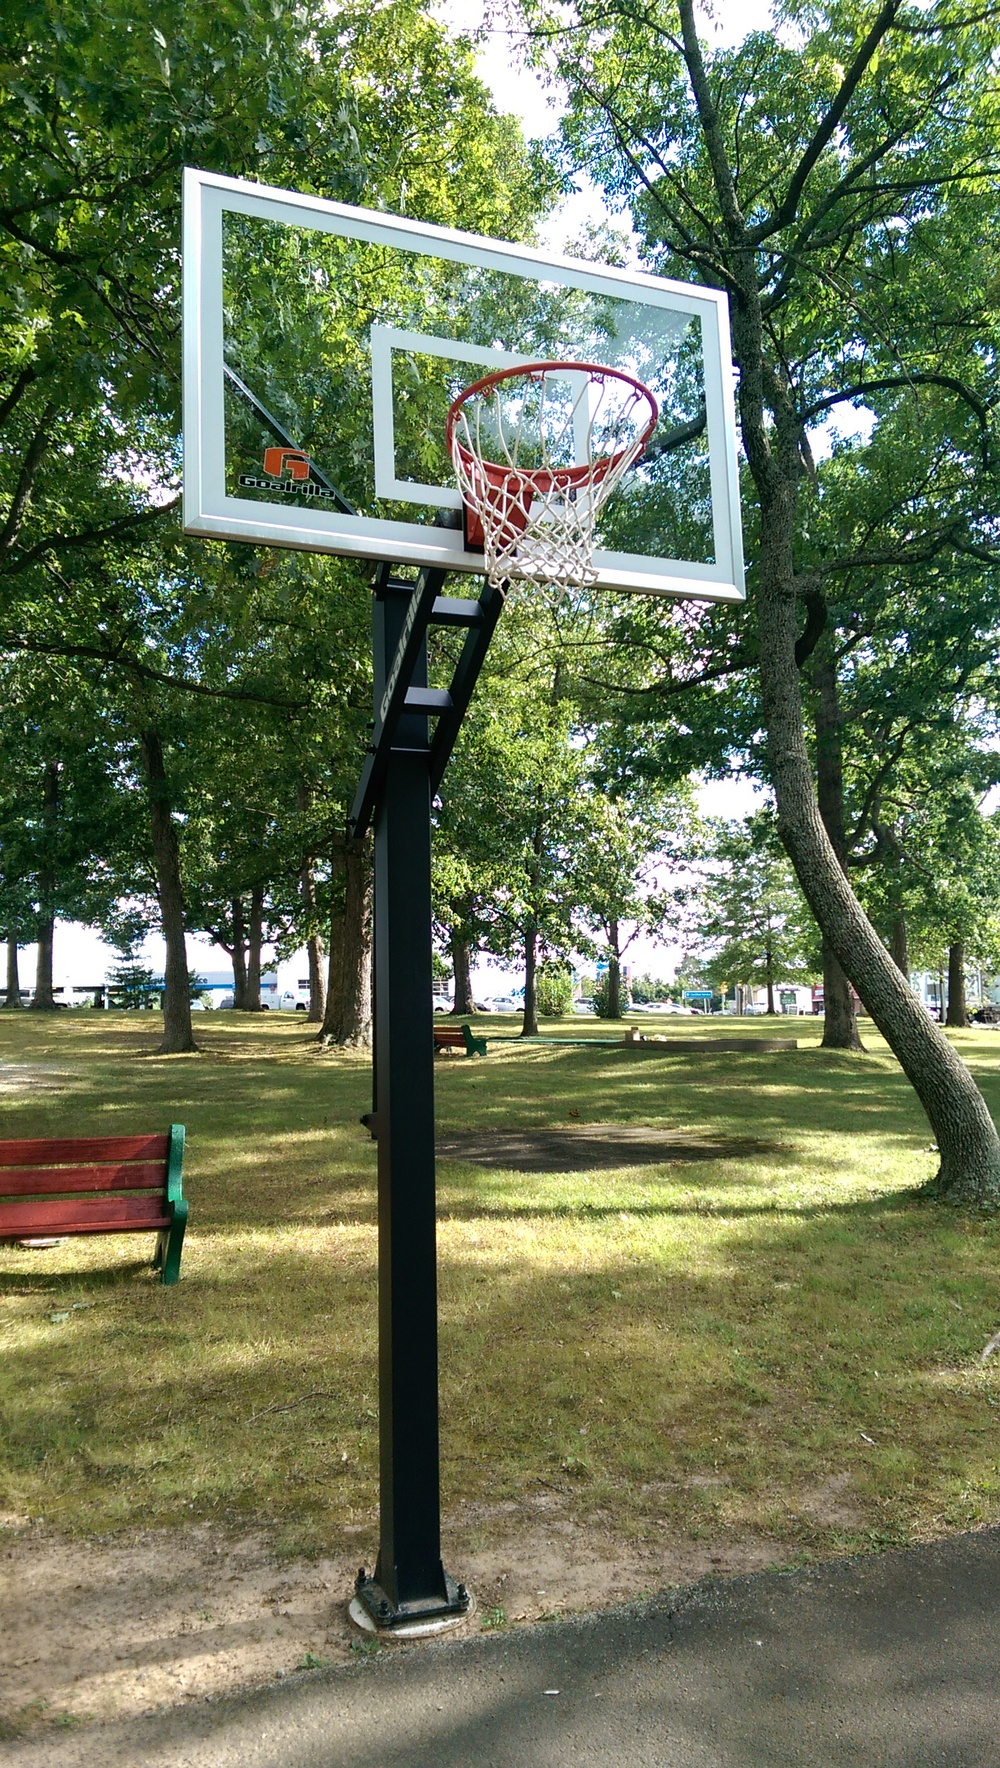 New Basketball Net!